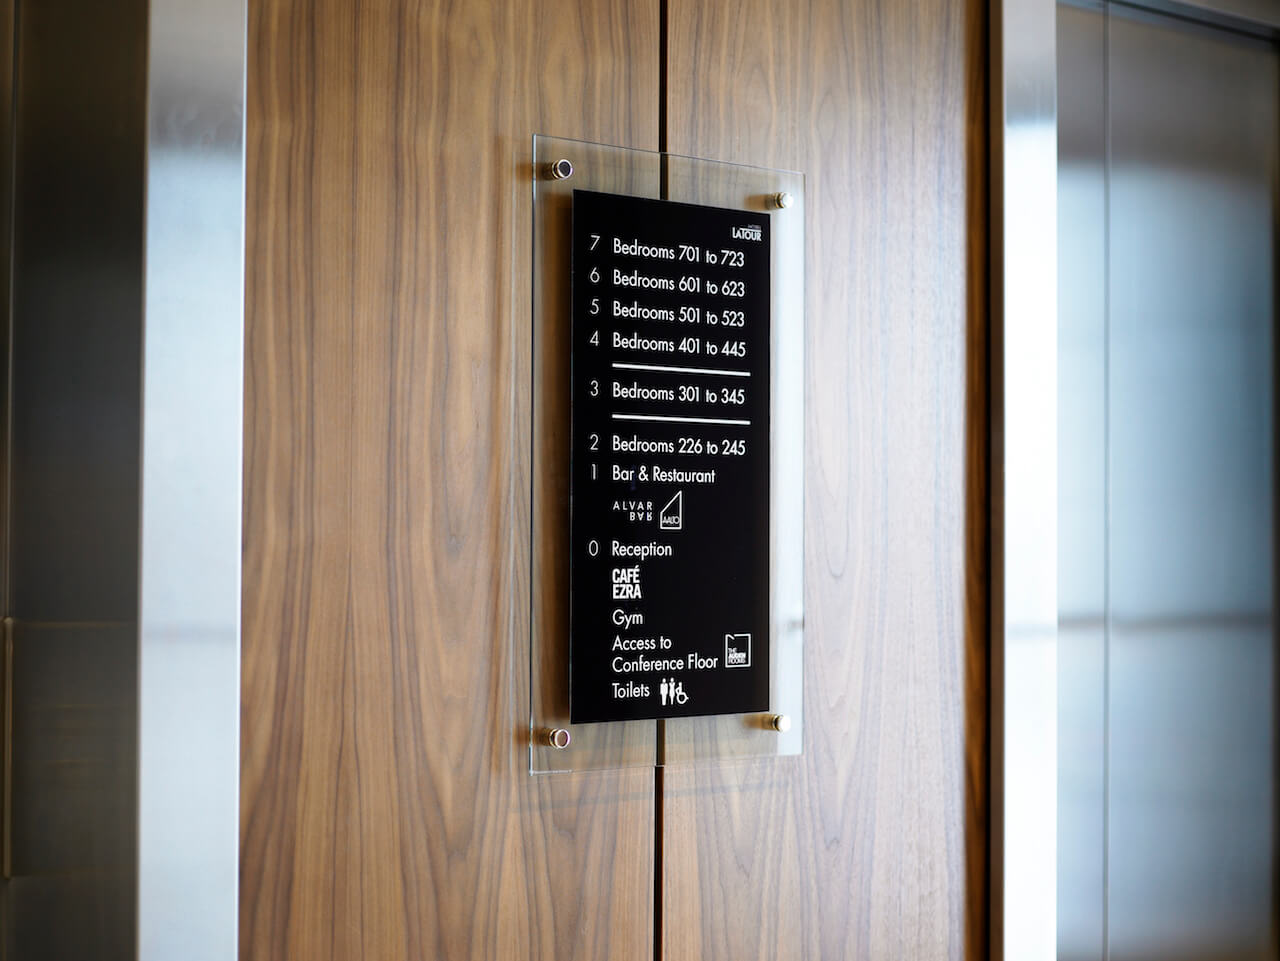 Directional signs and details as part of the wayfinding scheme at a boutique hotel